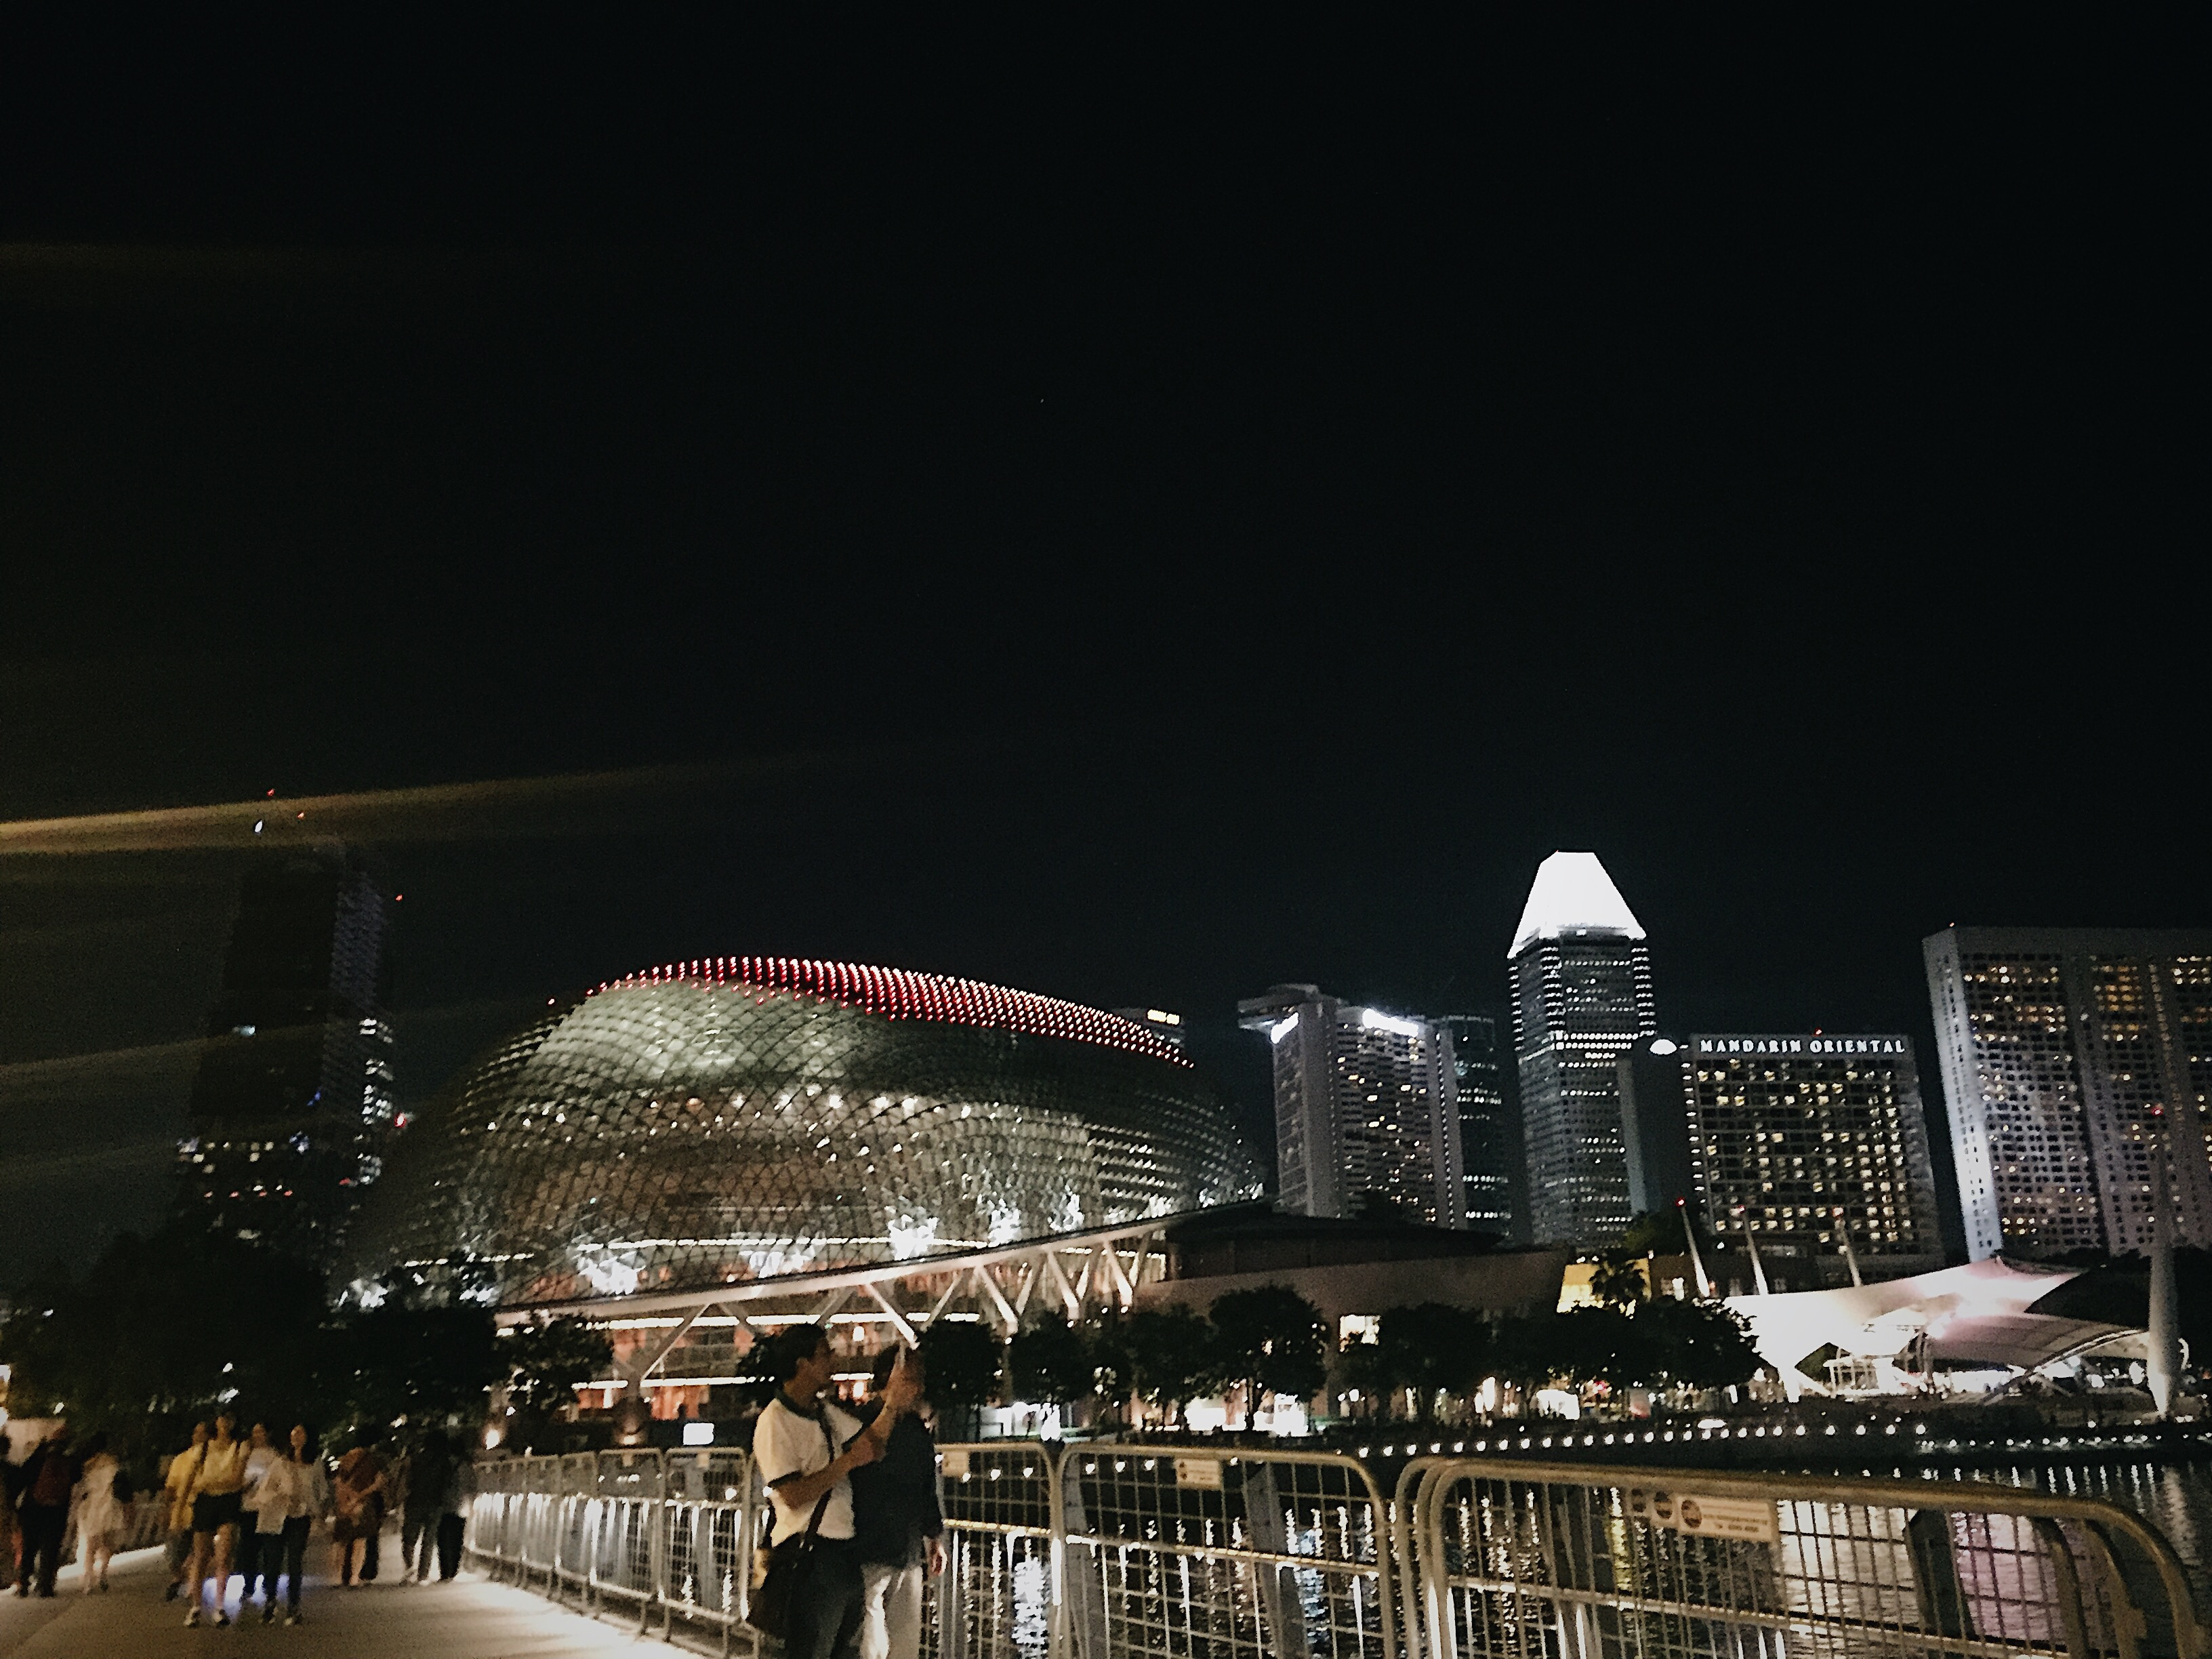 Esplanade Mall + Esplanade Bridge